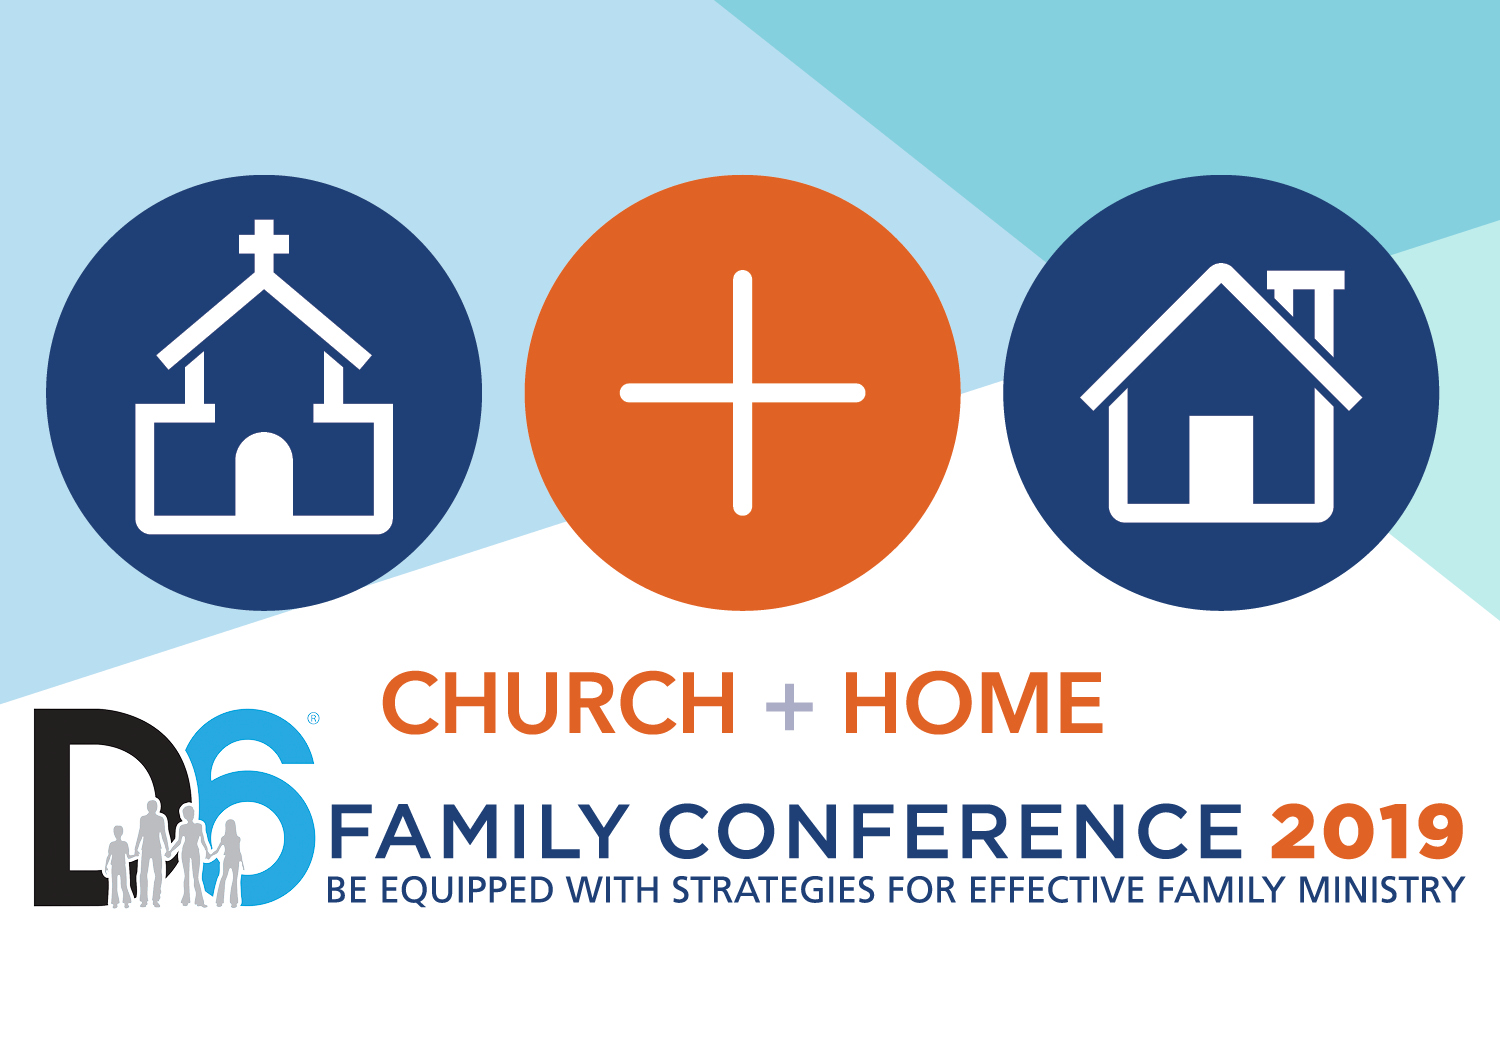 D6 Family Conference 2019: Church + Home – Single Day